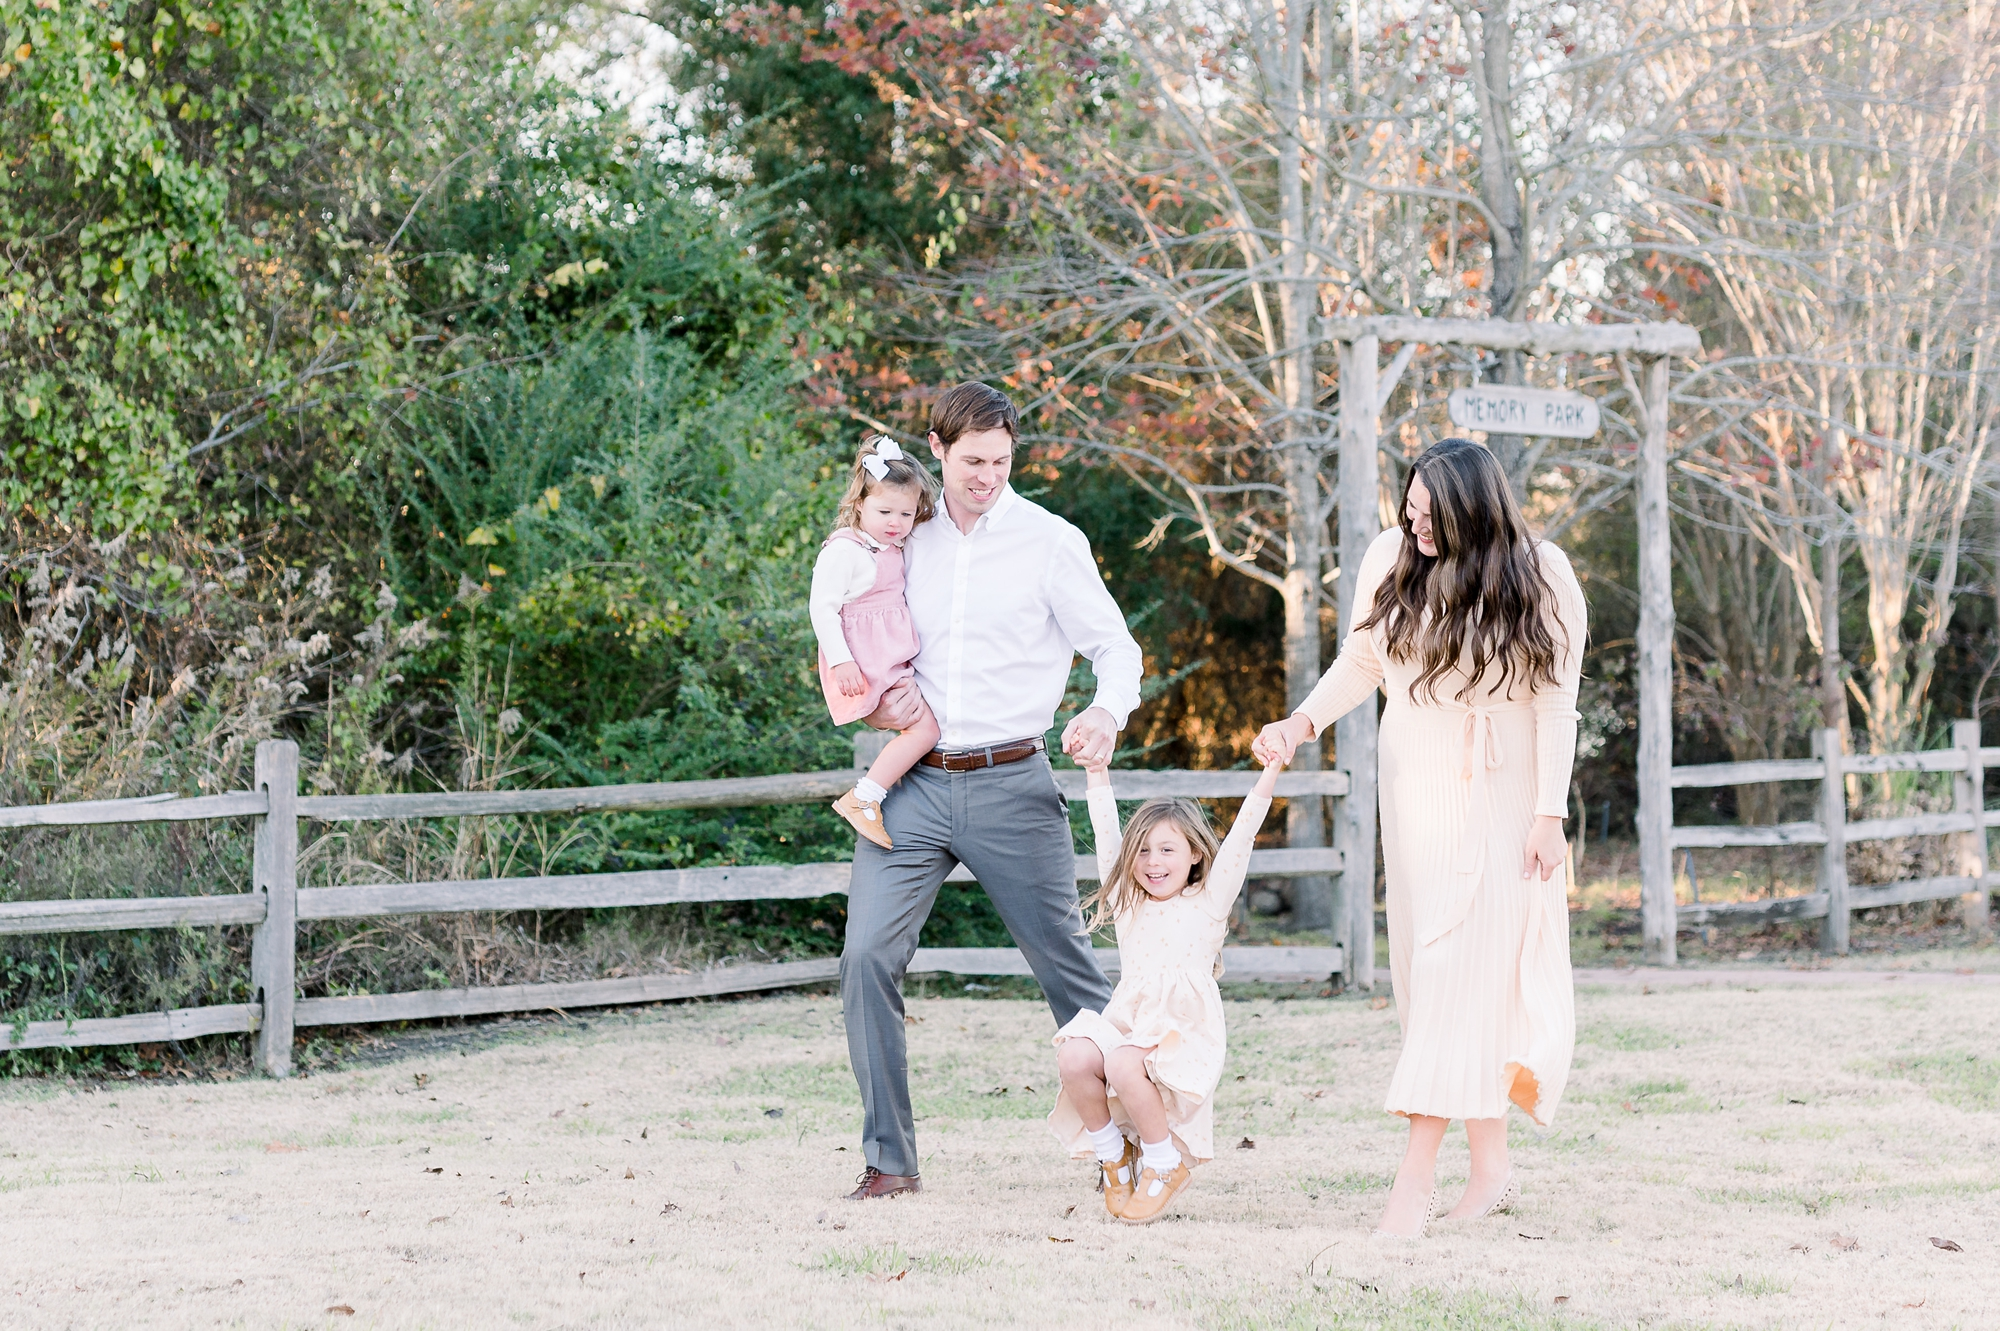 Family walking with child swinging in the middle during family portrait session. Photo by Aimee Hamilton Photography.